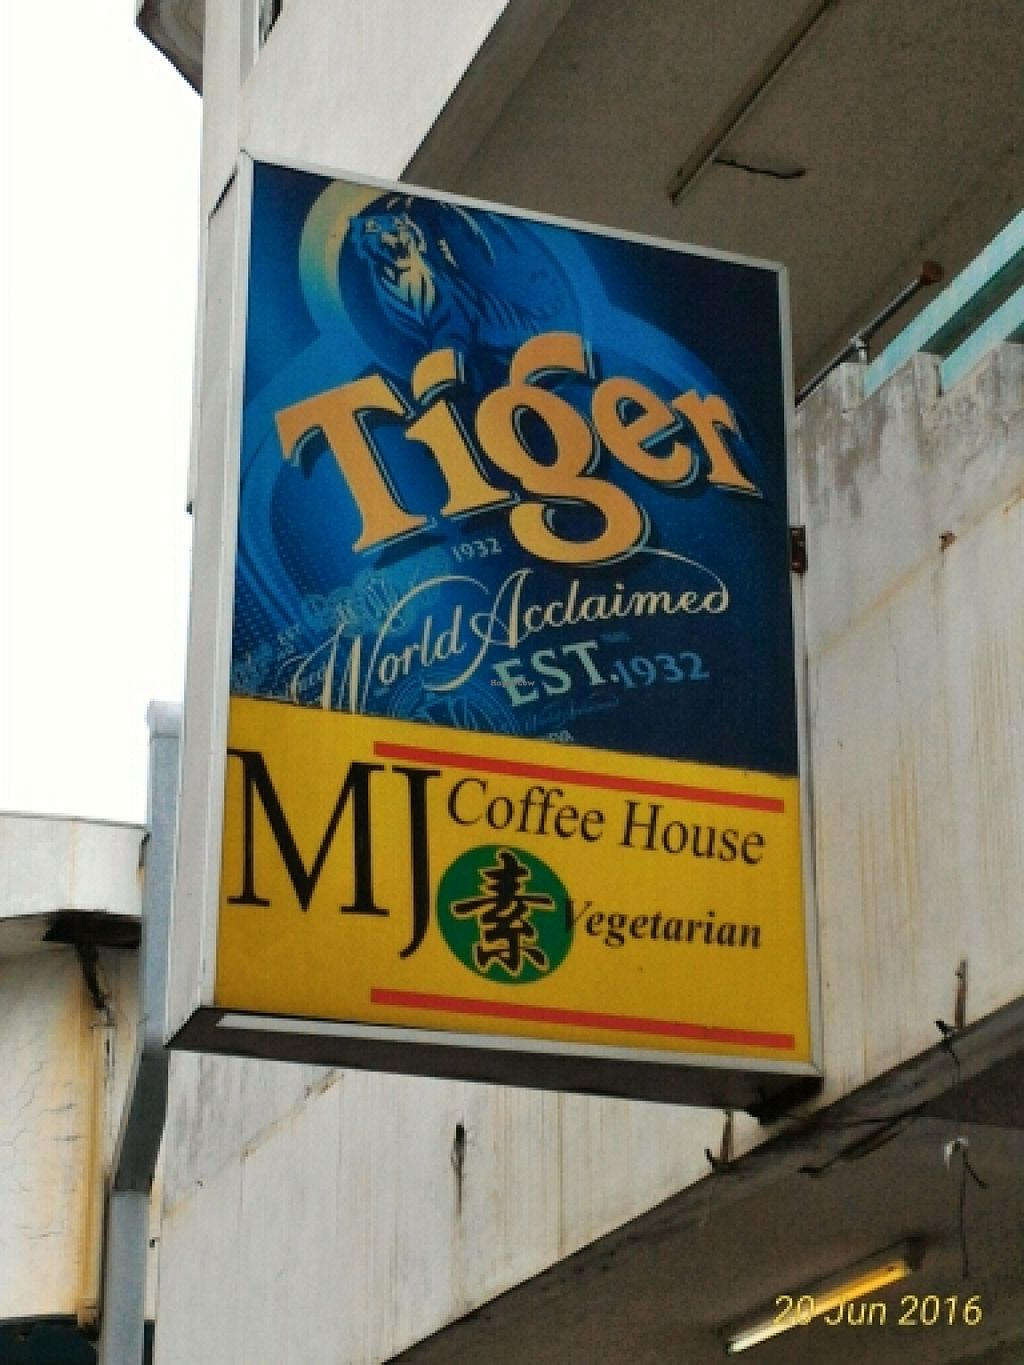 """Photo of MJ Coffee House  by <a href=""""/members/profile/lshan5115"""">lshan5115</a> <br/>Signboard <br/> June 21, 2016  - <a href='/contact/abuse/image/75399/155320'>Report</a>"""